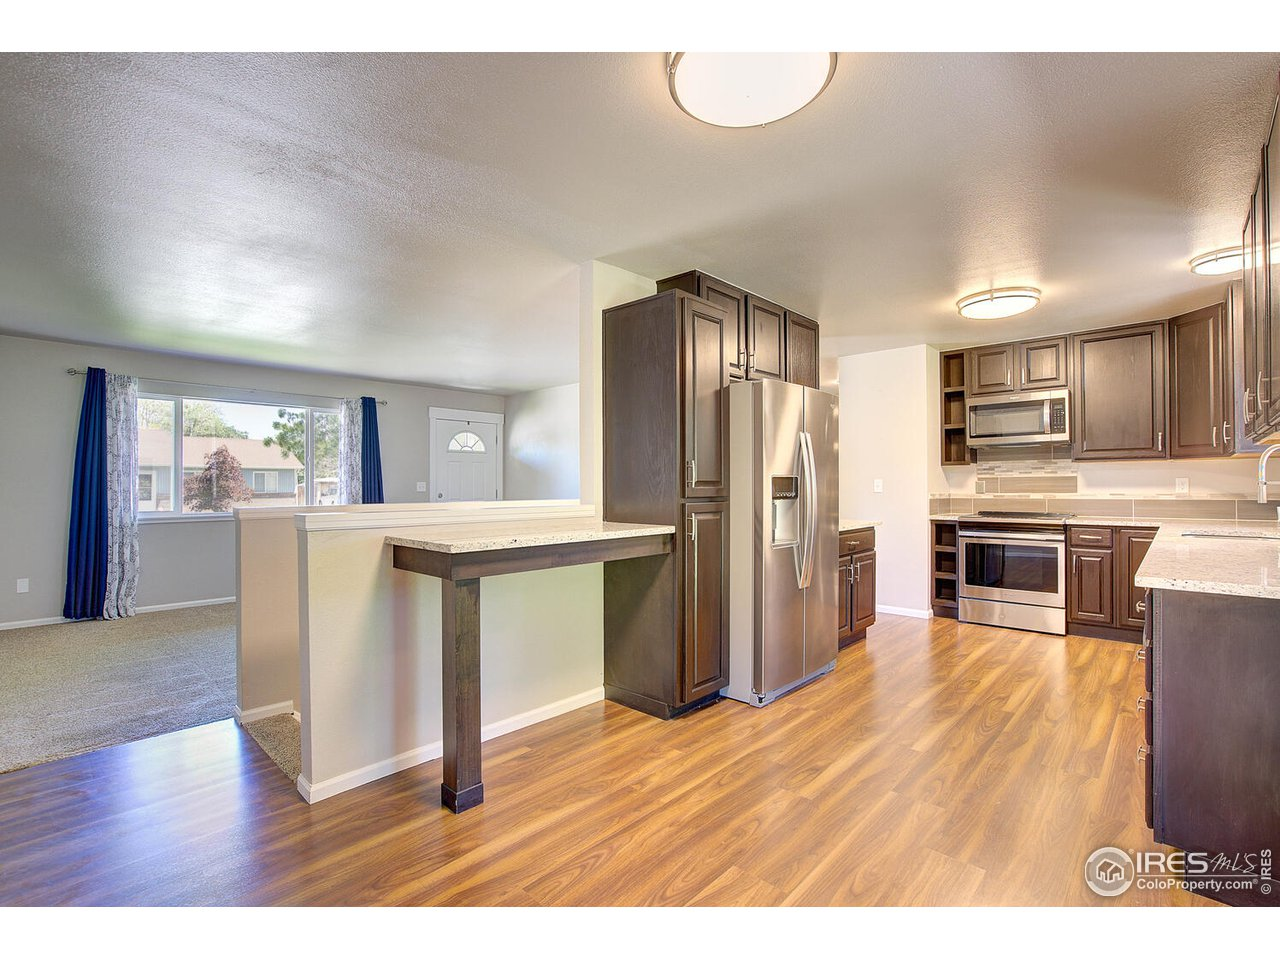 Check out this updated kitchen!